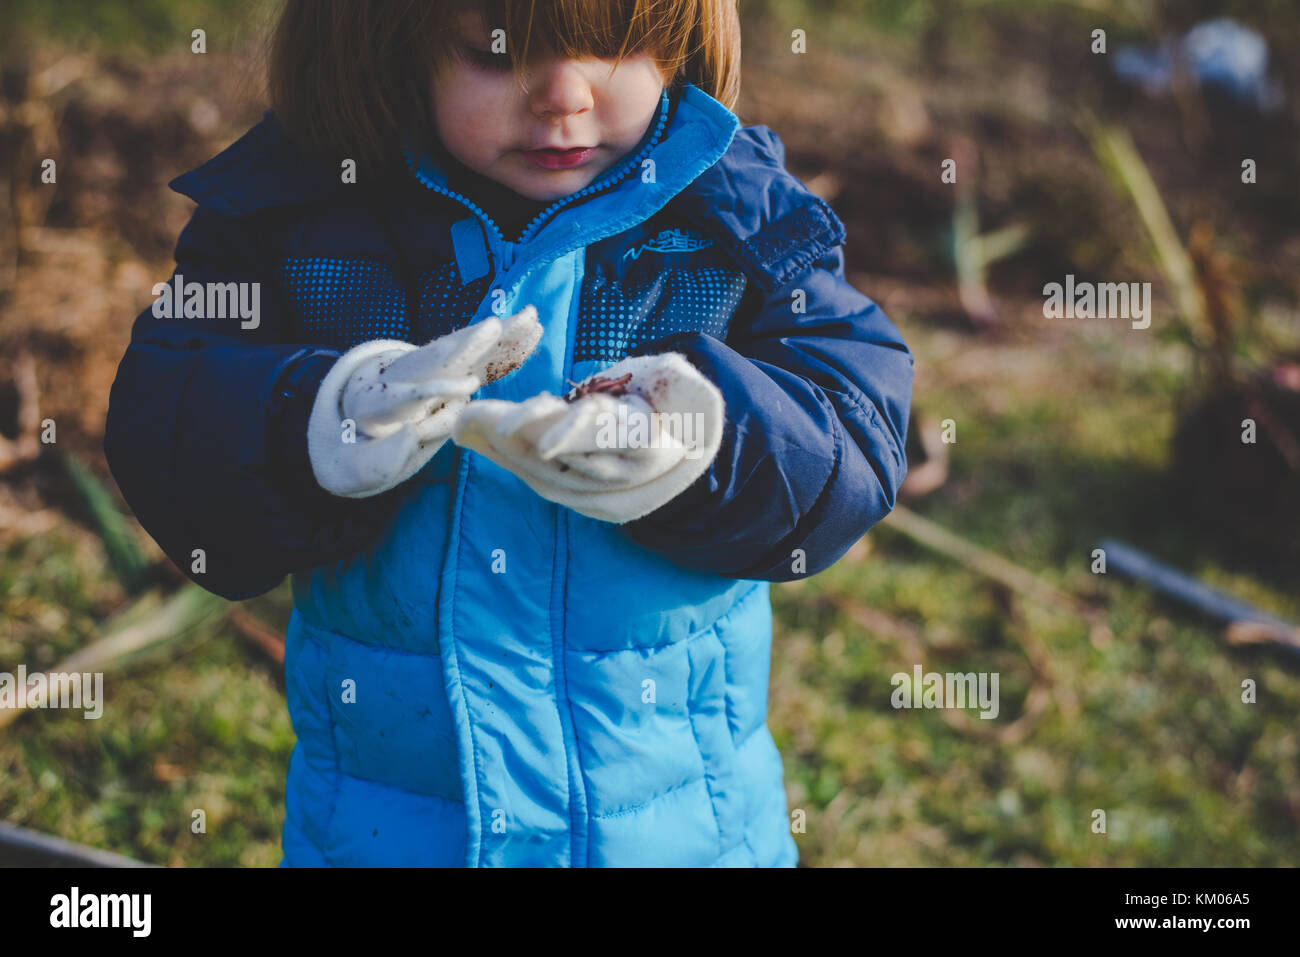 A little girl looking at dirt in her glove covered hands - Stock Image